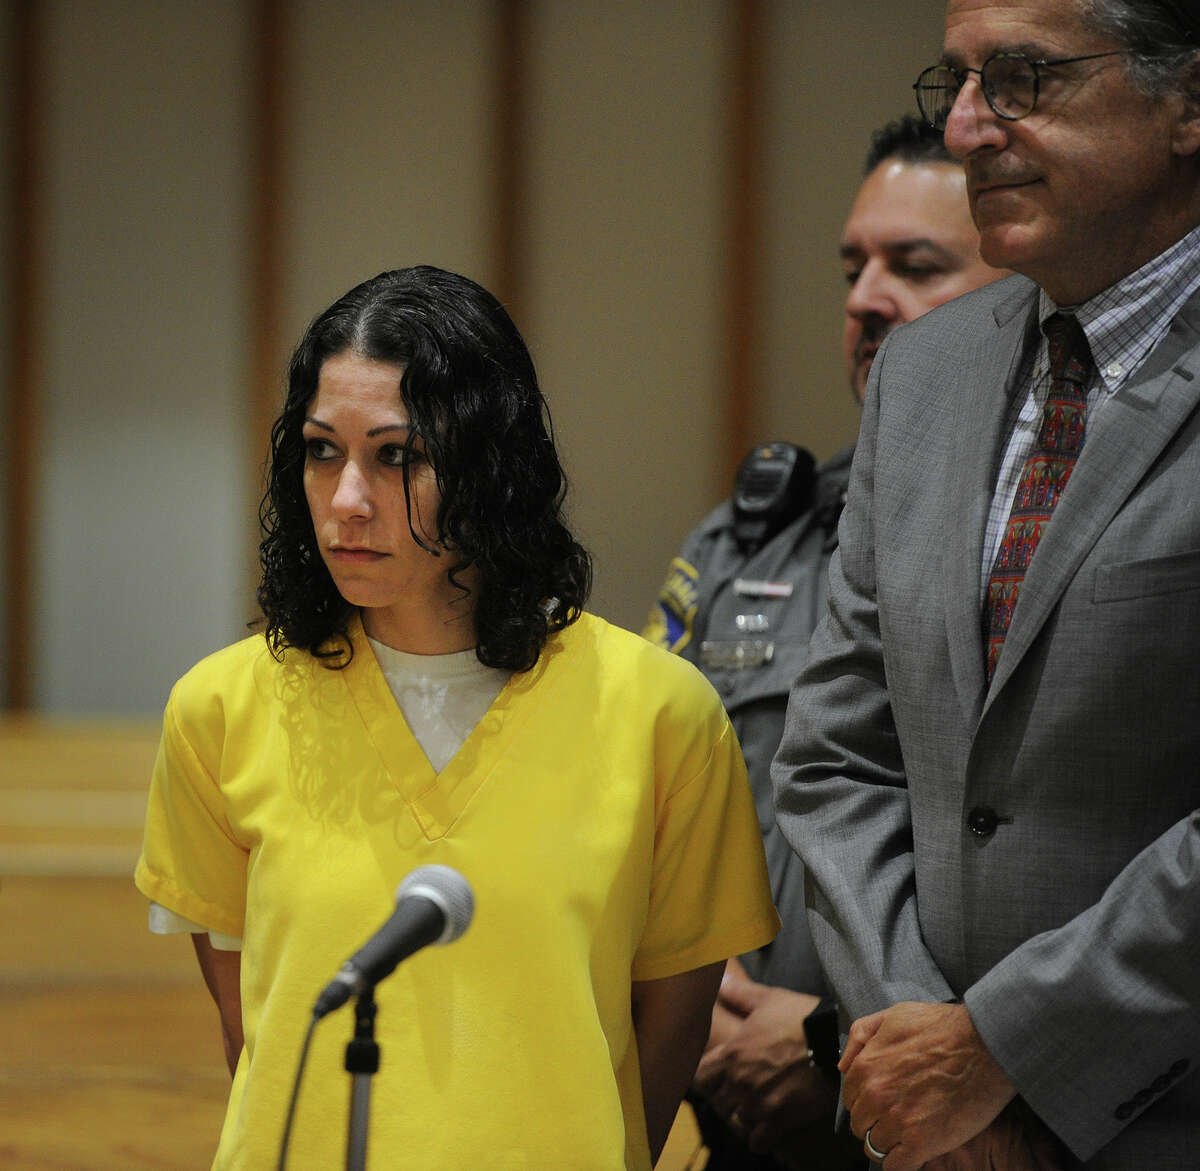 Standing with her lawyer Norman Pattis, right, Jennifer Valiante, Kyle Navin's girlfriend, is sentenced to sixteen years, suspended after eight years, for her role in the murder of Navin's parents, in Superior Court in Bridgeport, Conn. on Wednesday, August 1, 2018.